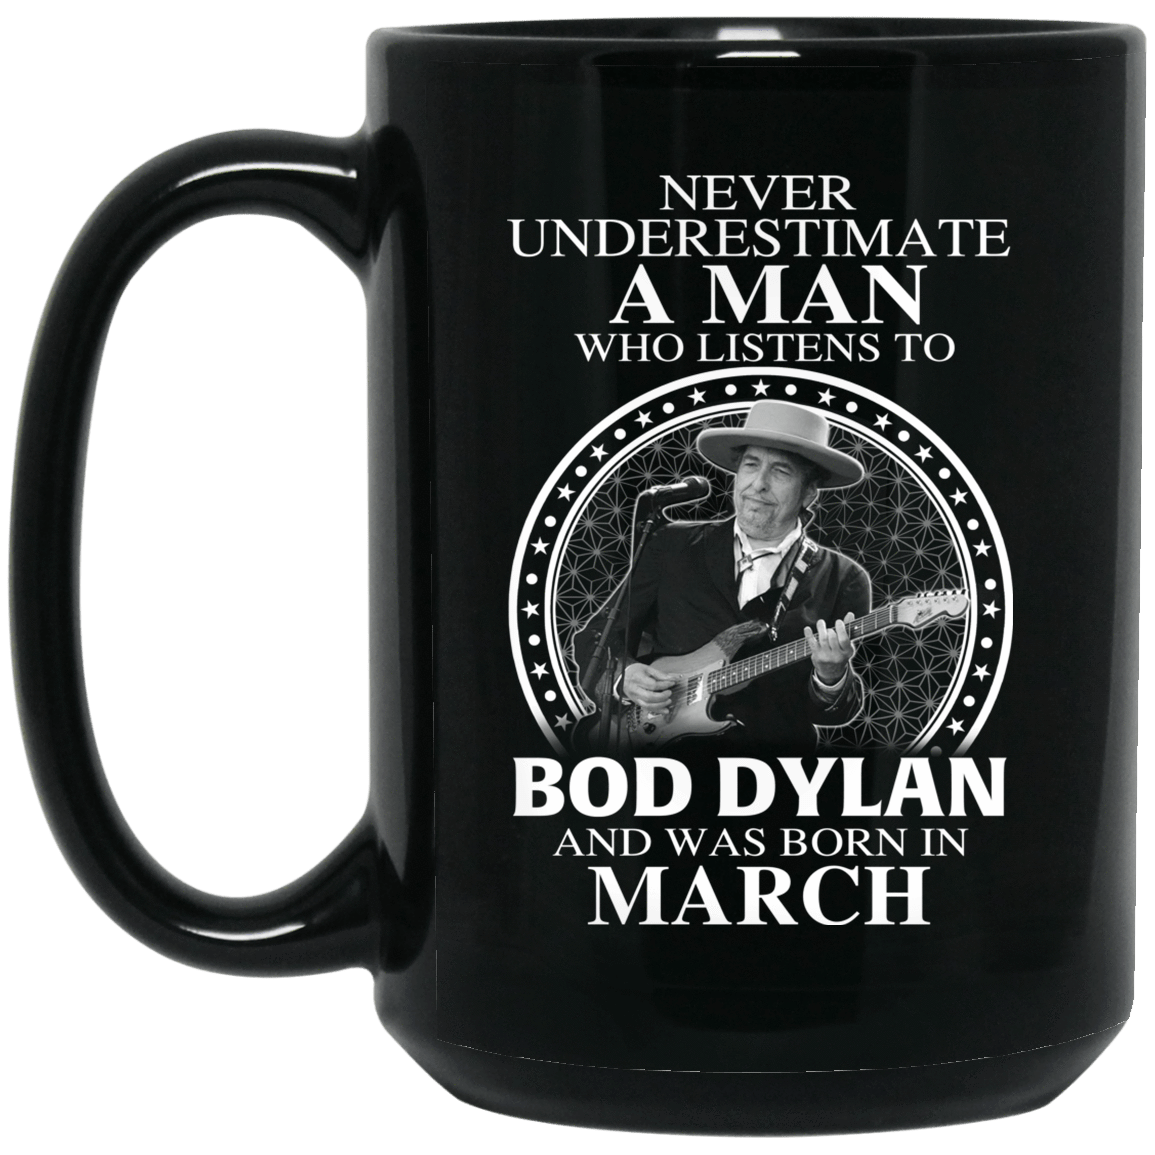 A Man Who Listens To Bob Dylan And Was Born In March Mug 1066-10182-76154692-49311 - Tee Ript